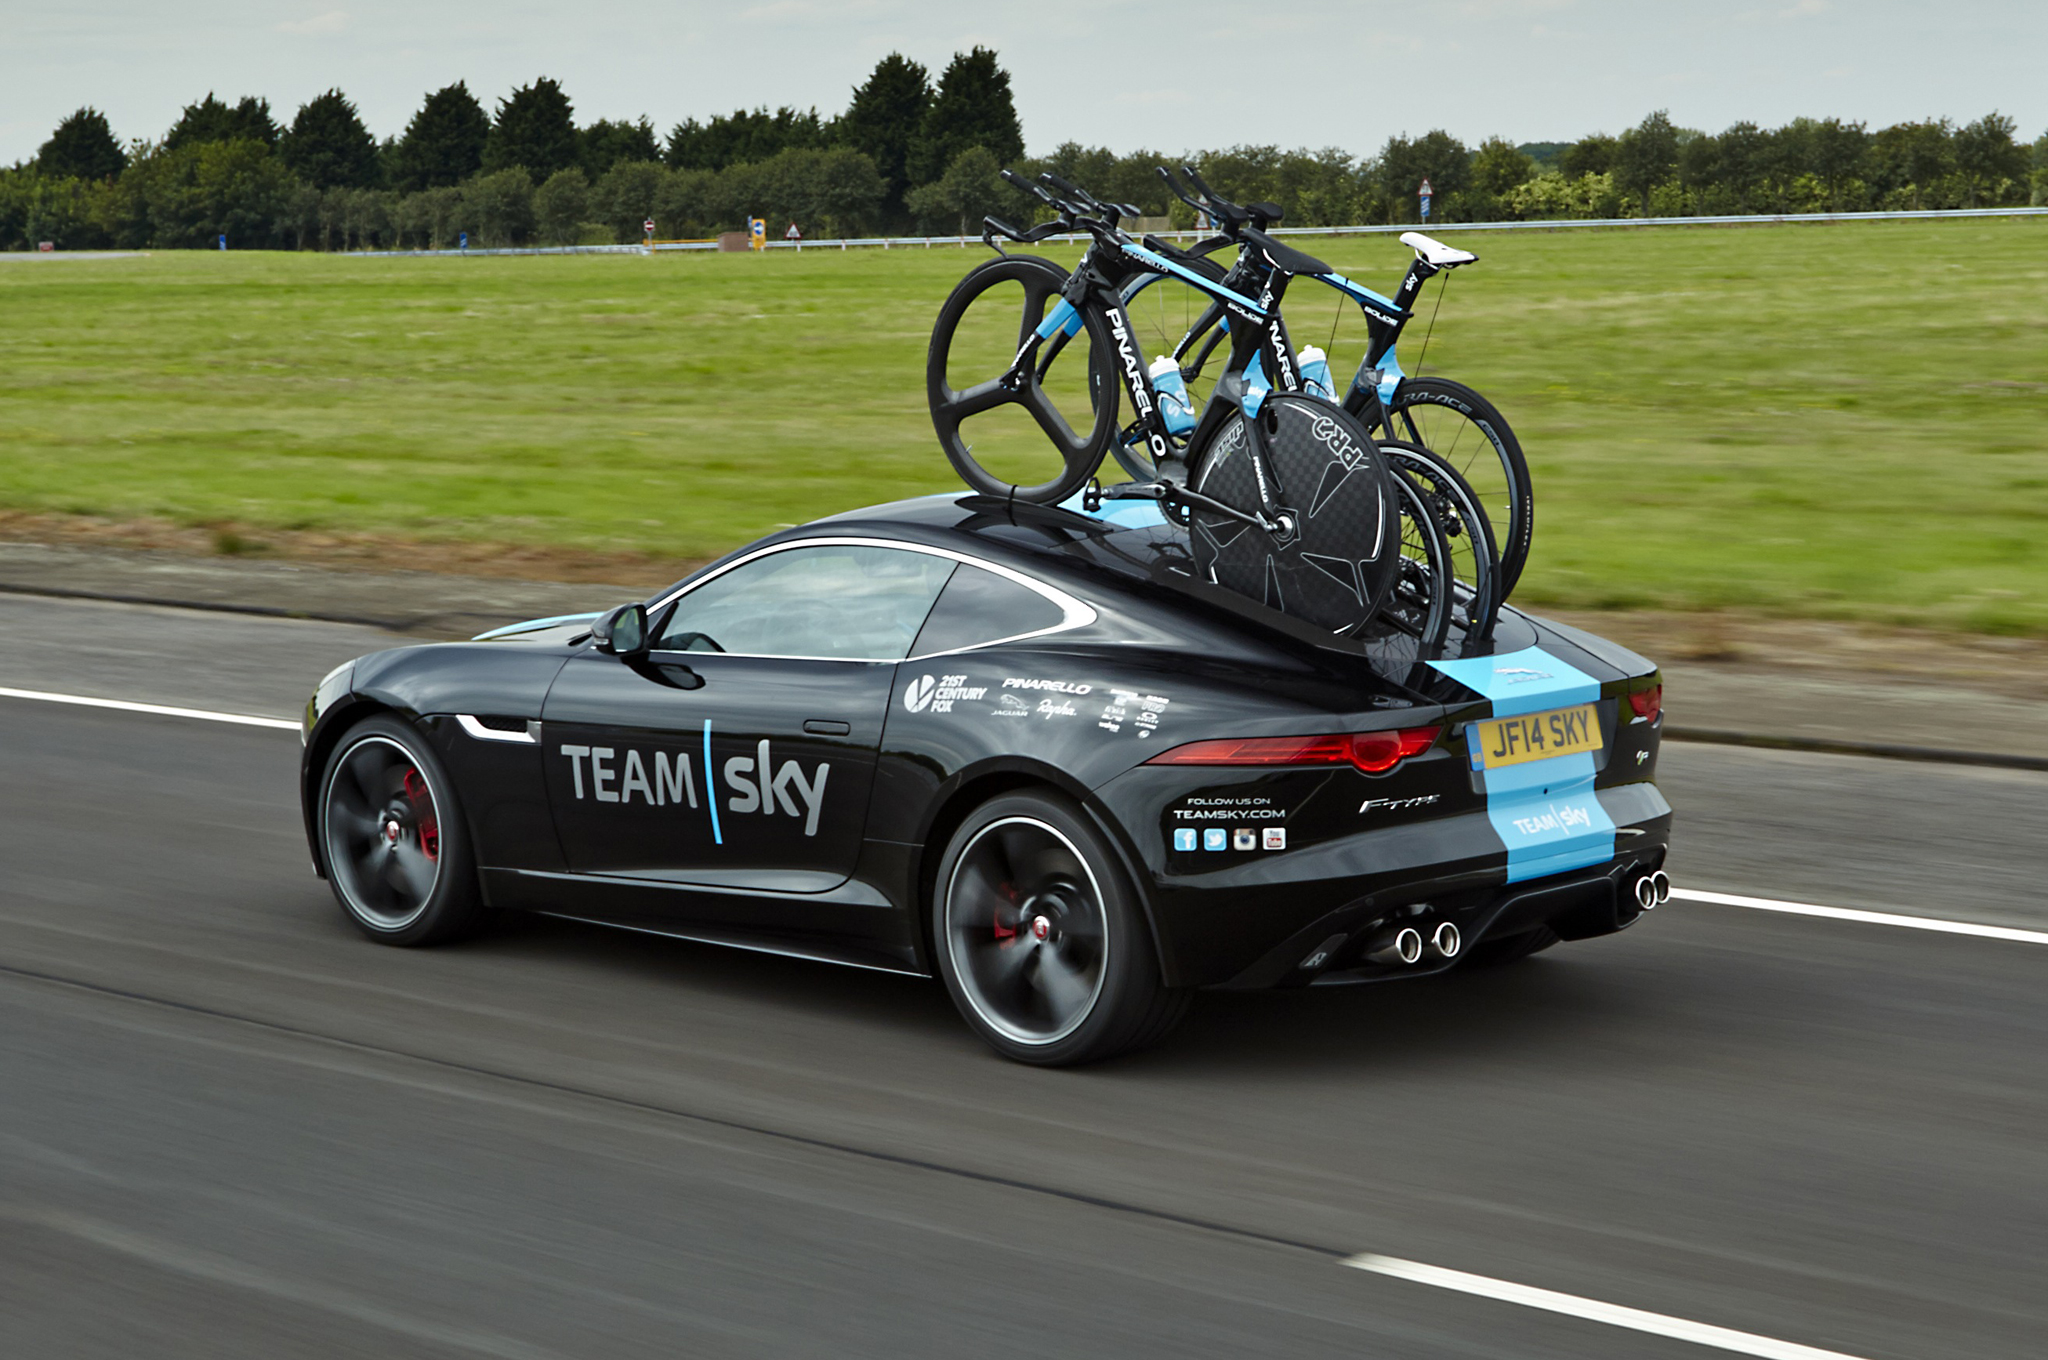 2015-jaguar-f-type-coupe-r-for-sky-team-left-rear-side.jpg